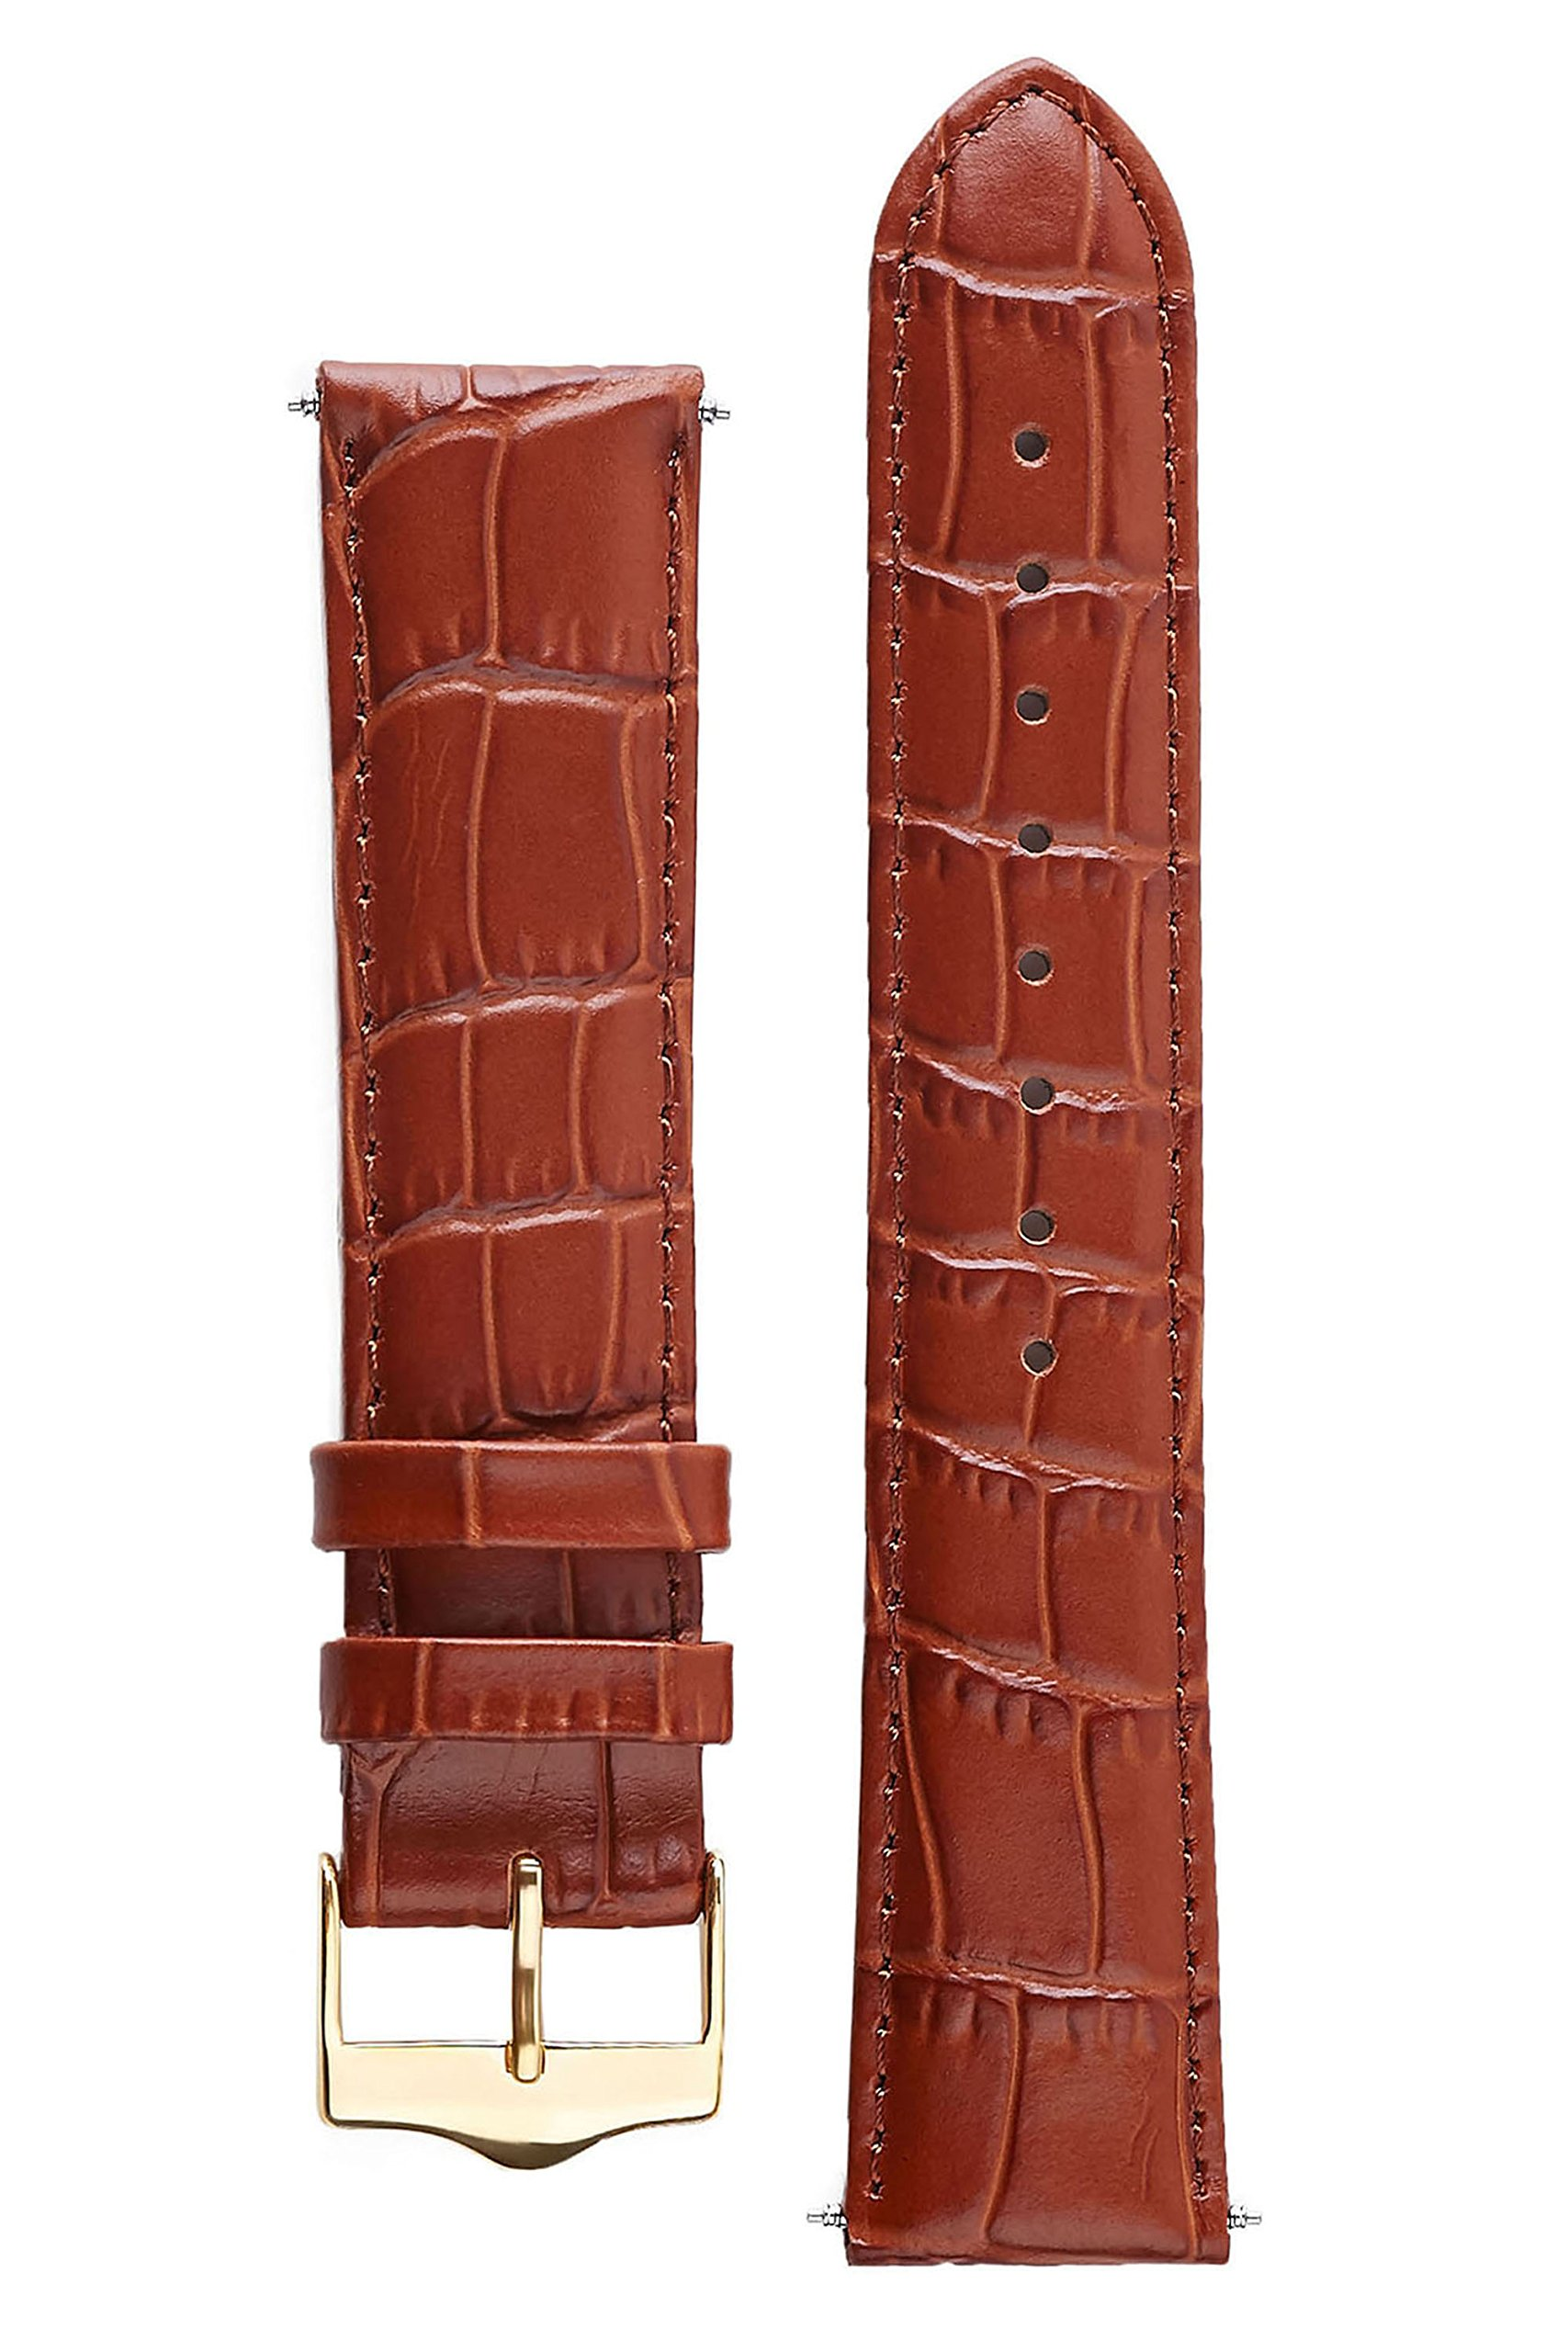 Signature Tropico in brown 18 mm extra long watch band. Replacement watch strap. Genuine leather. Gold Buckle